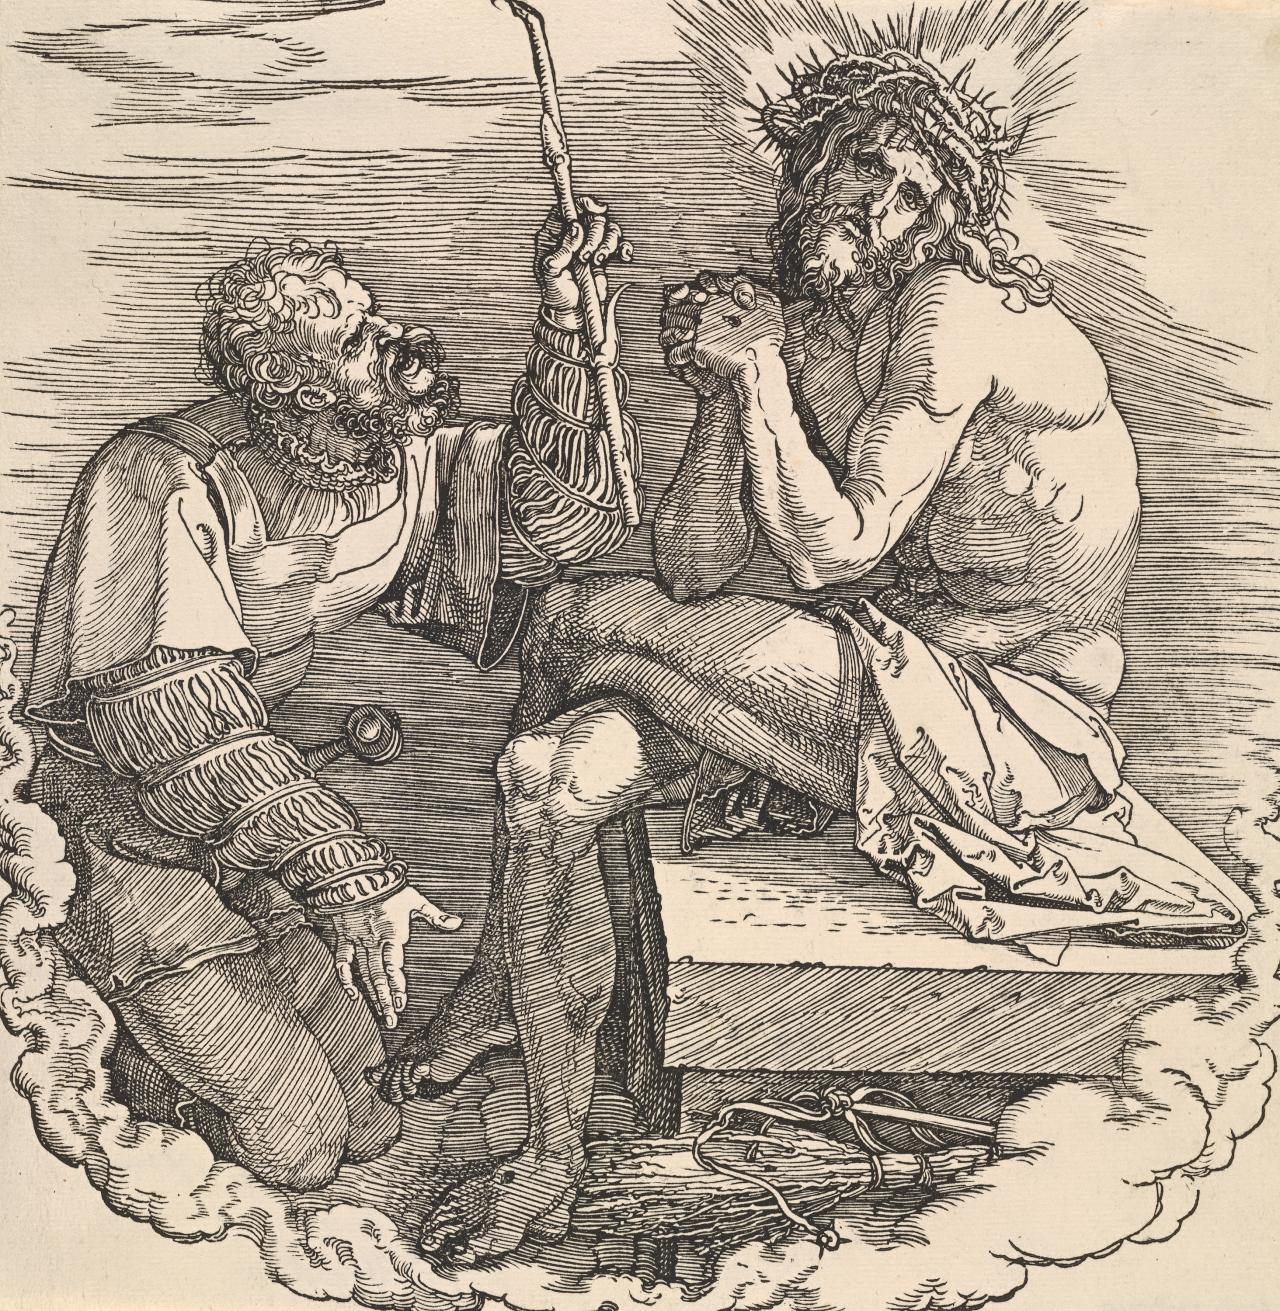 Christ, Man of Sorrows, mocked by a soldier